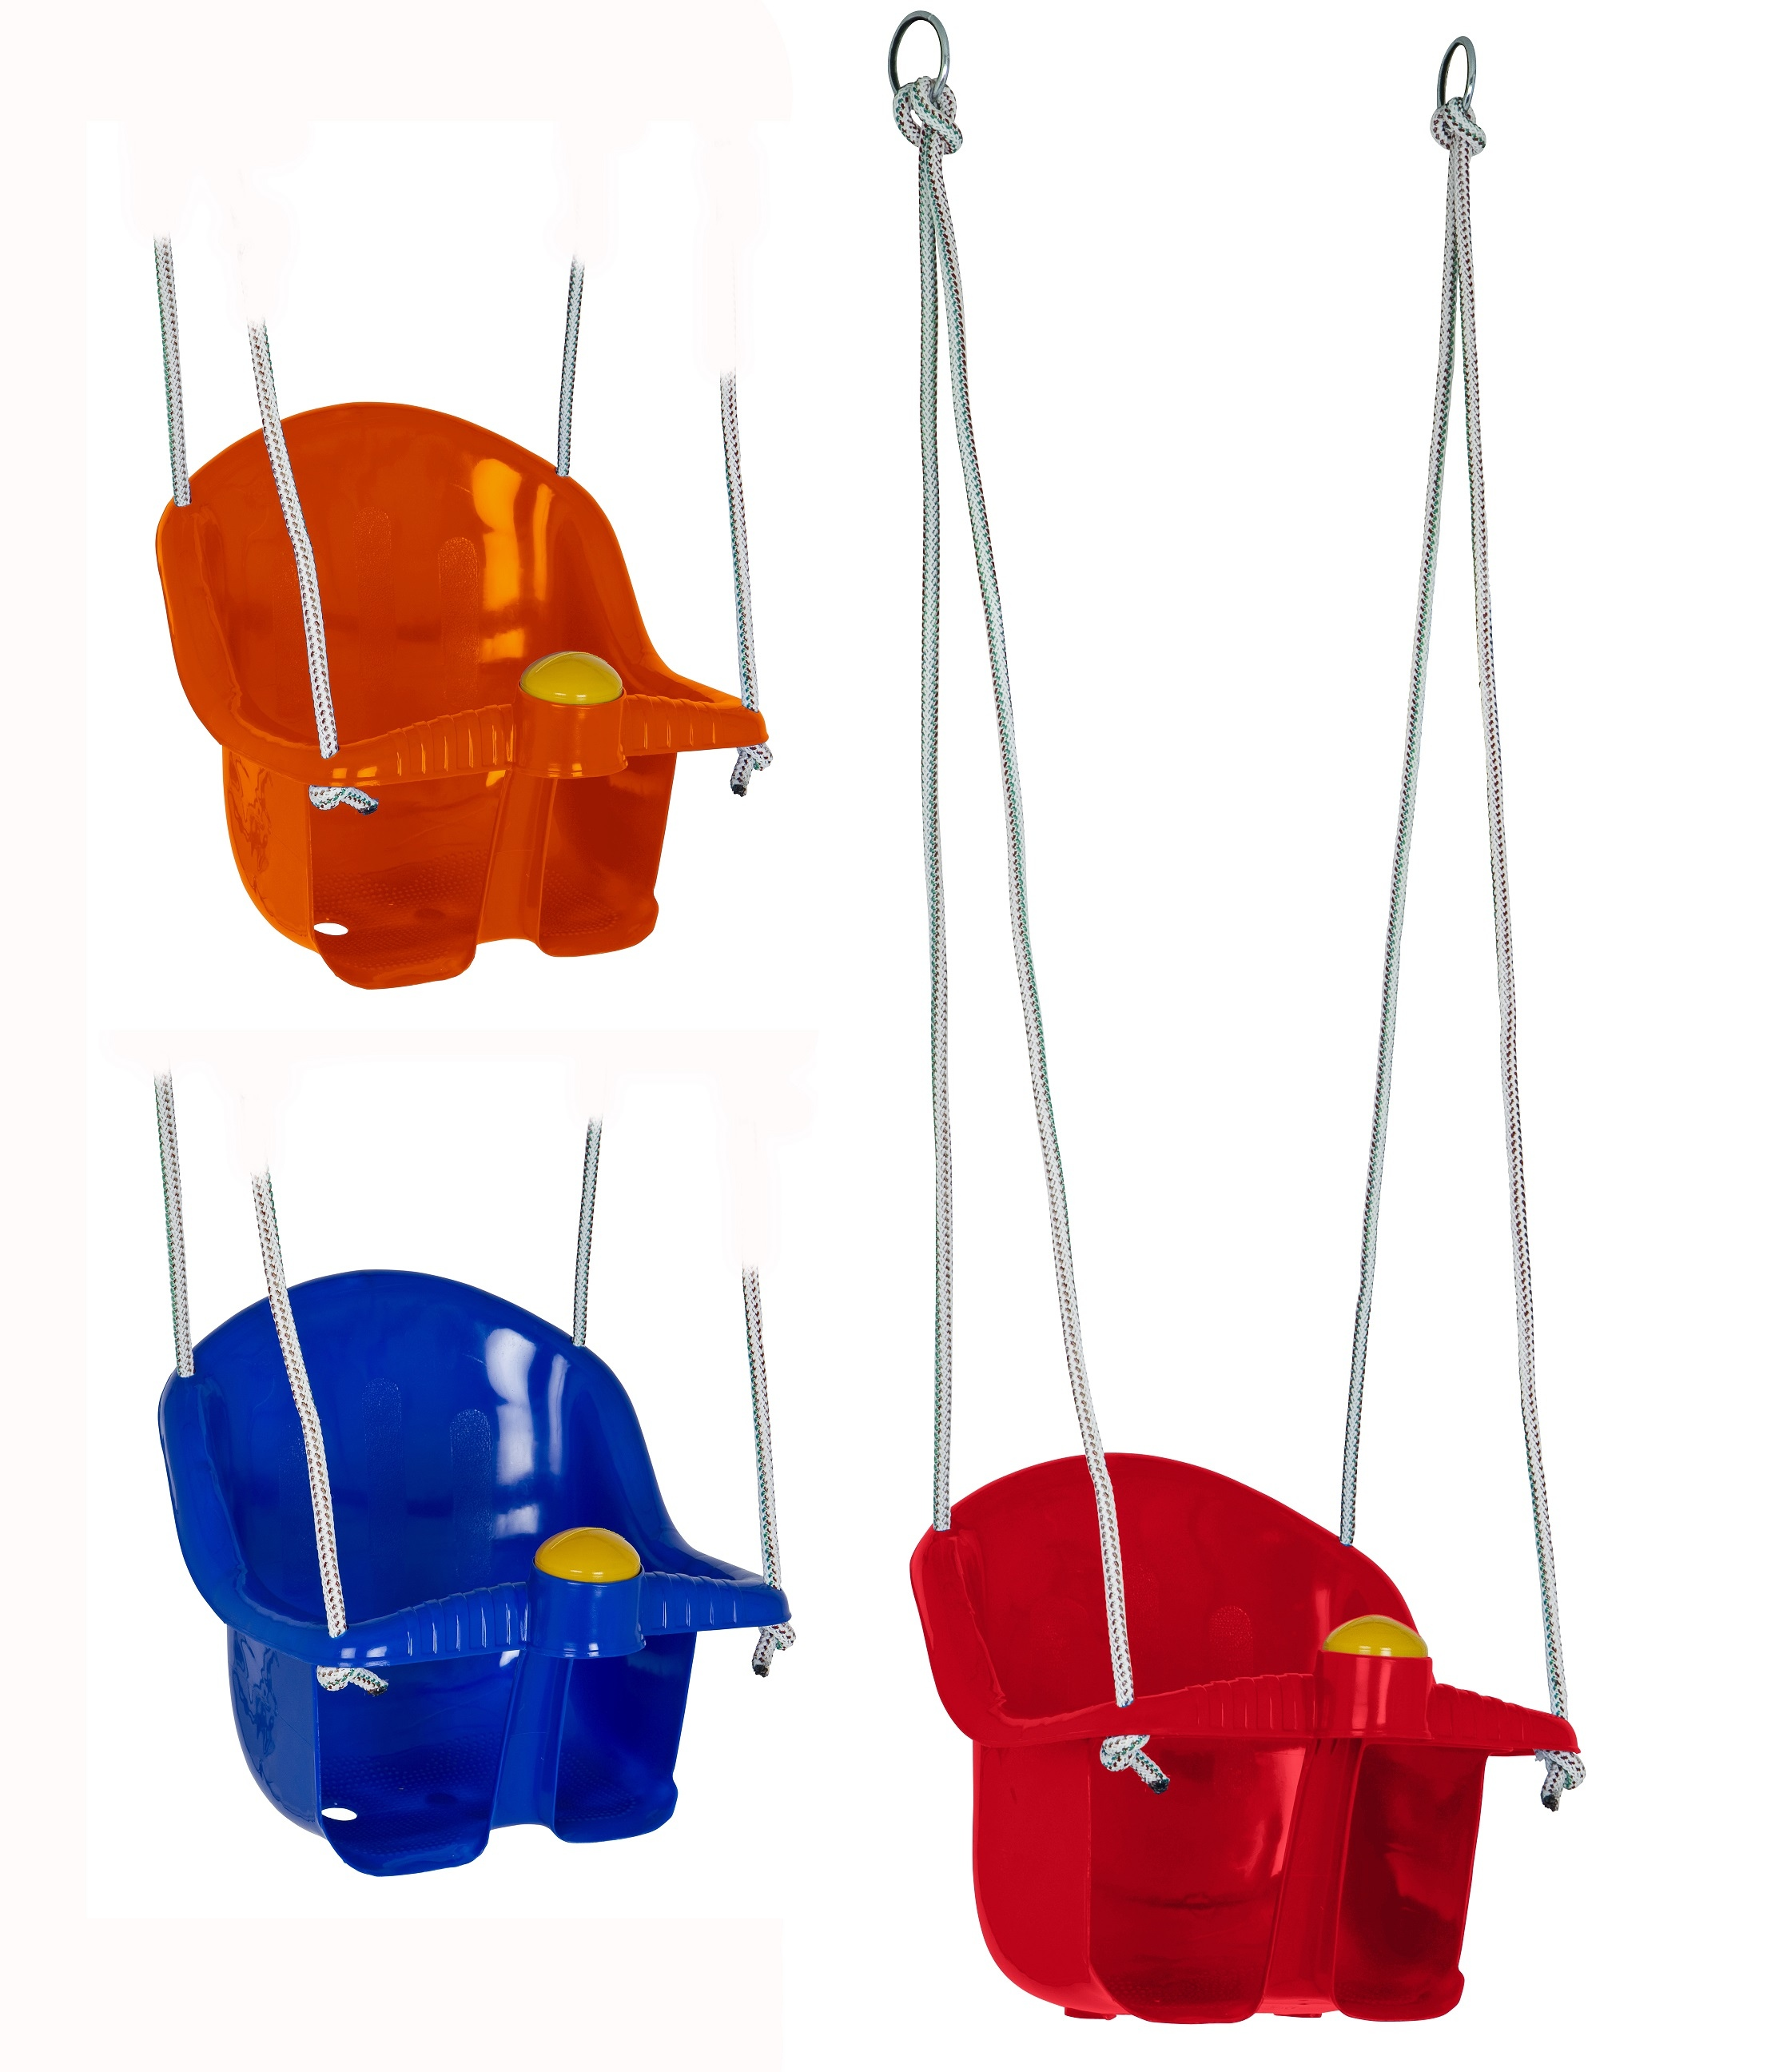 swings sets for on jamboree n fort overstock swing kids discounts pin shopping slide play big set